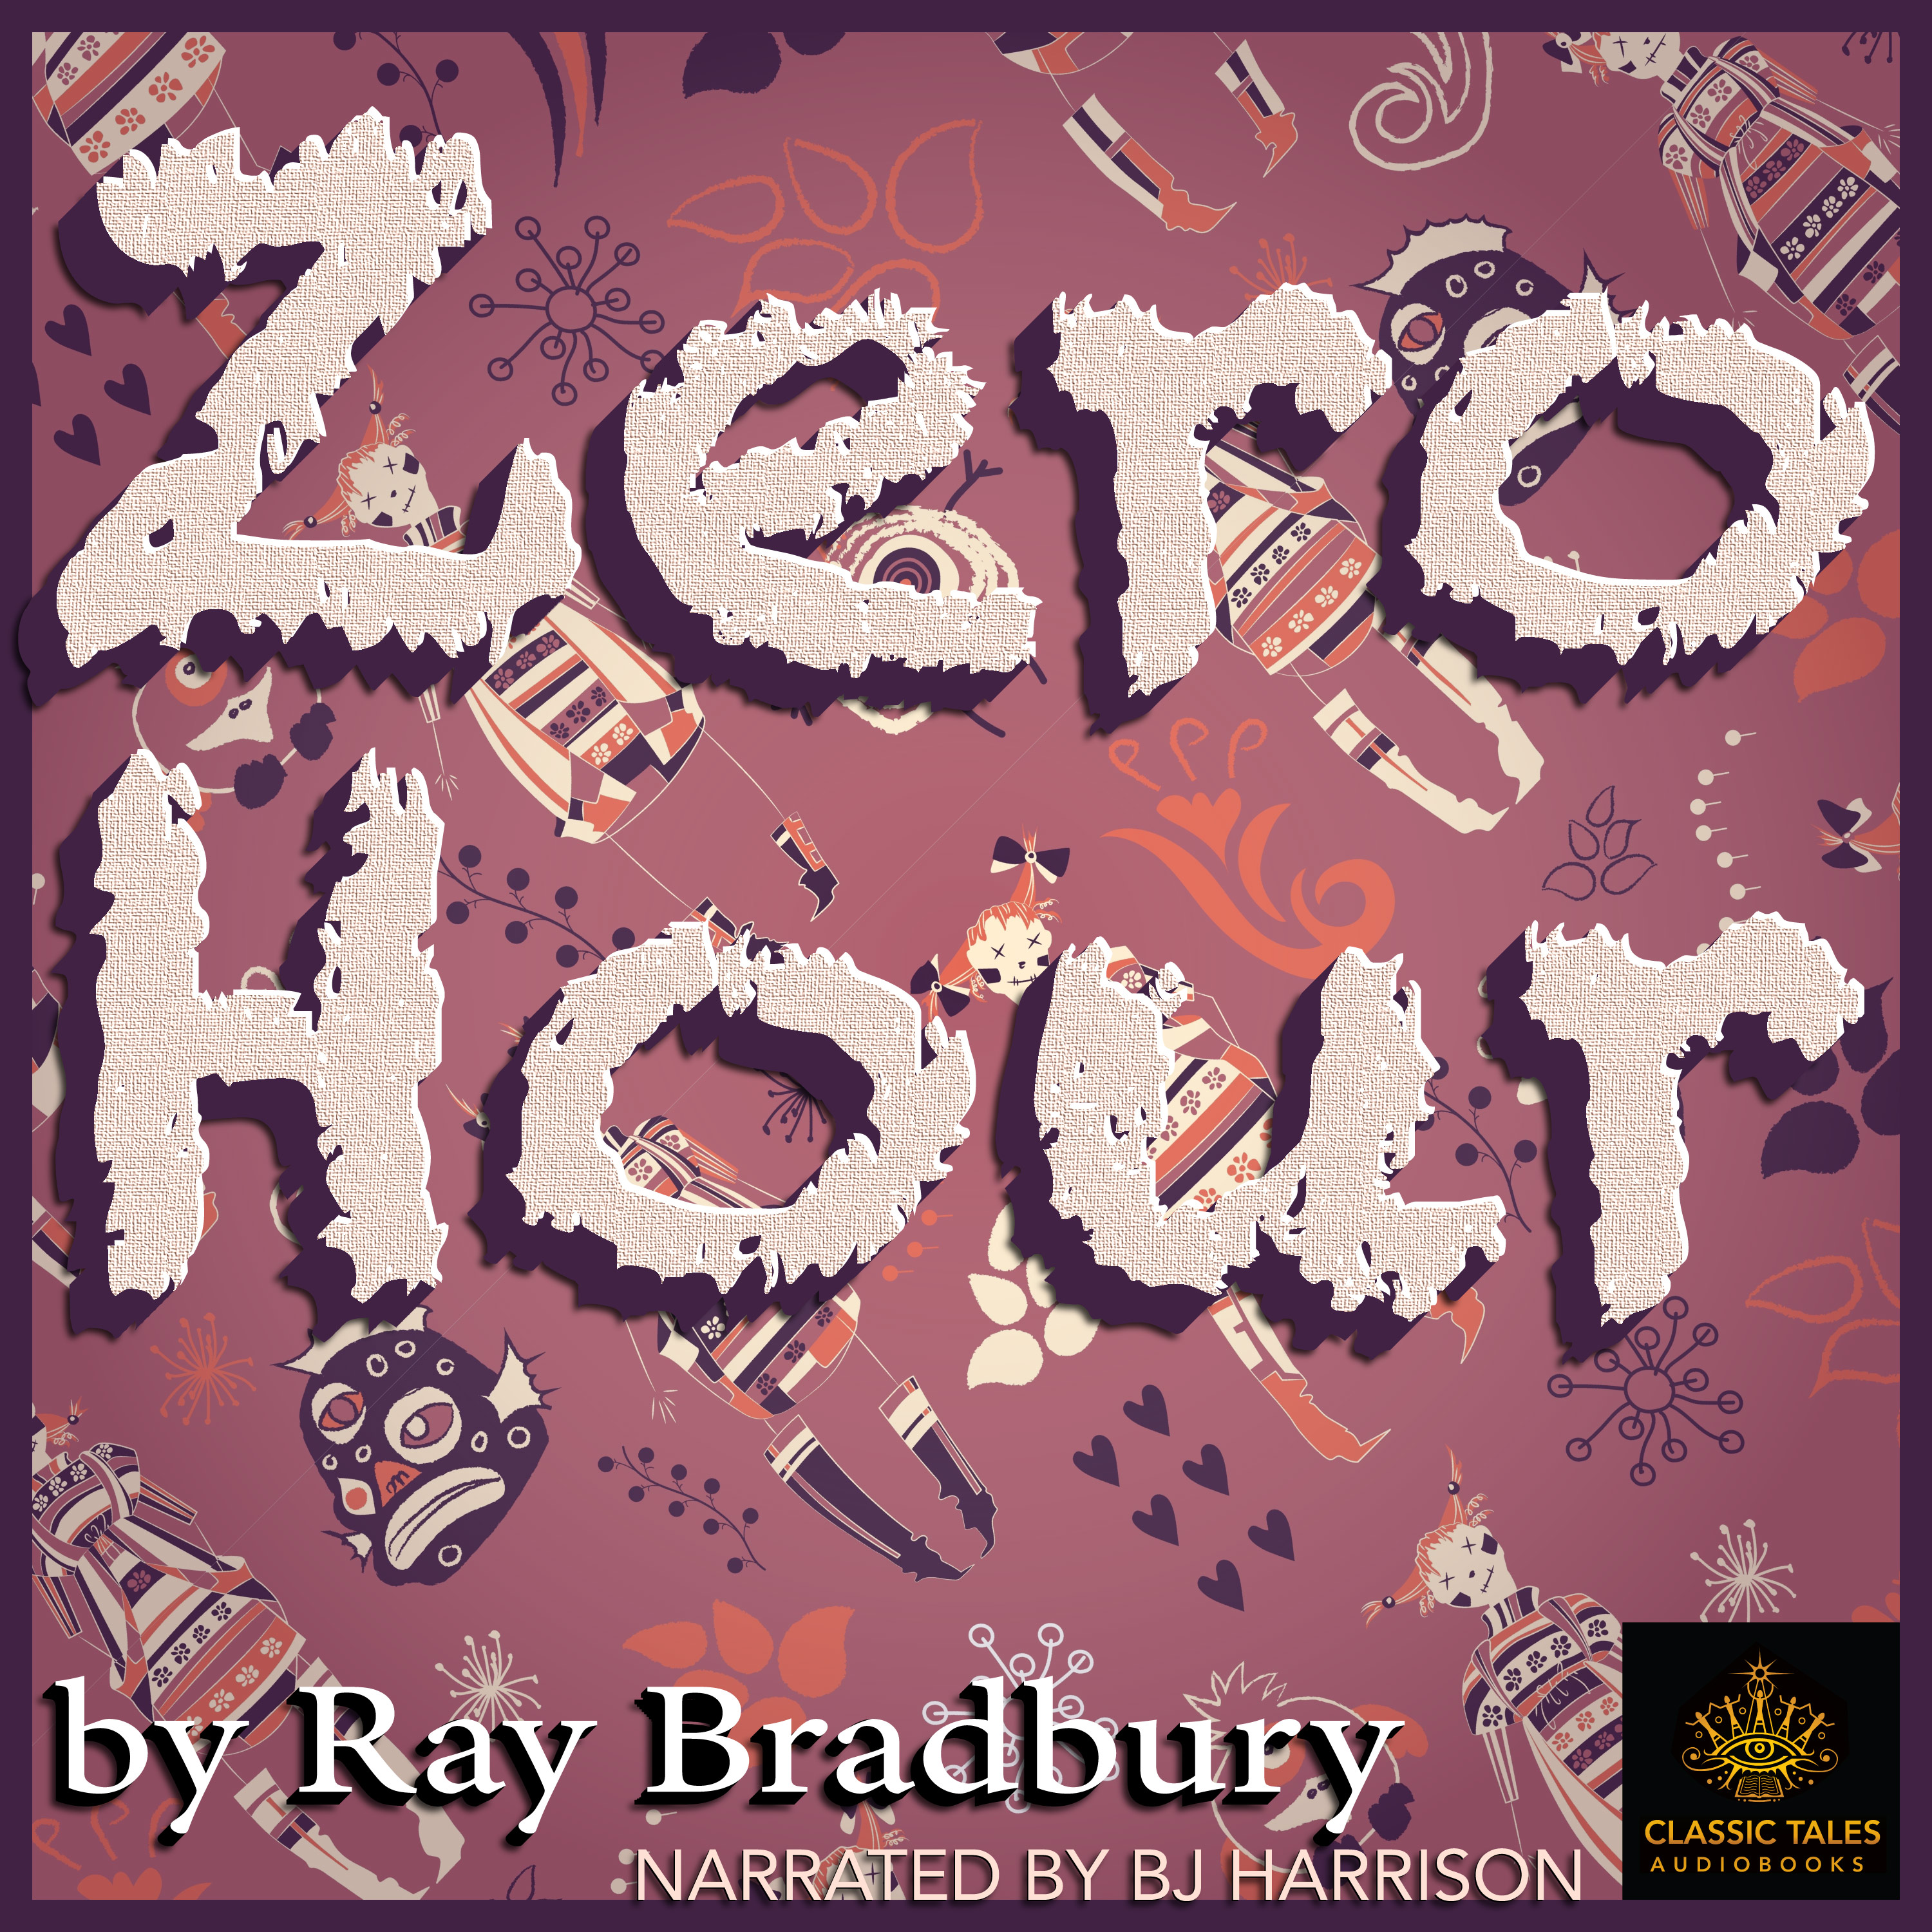 Ep. 730, Zero Hour, by Ray Bradbury